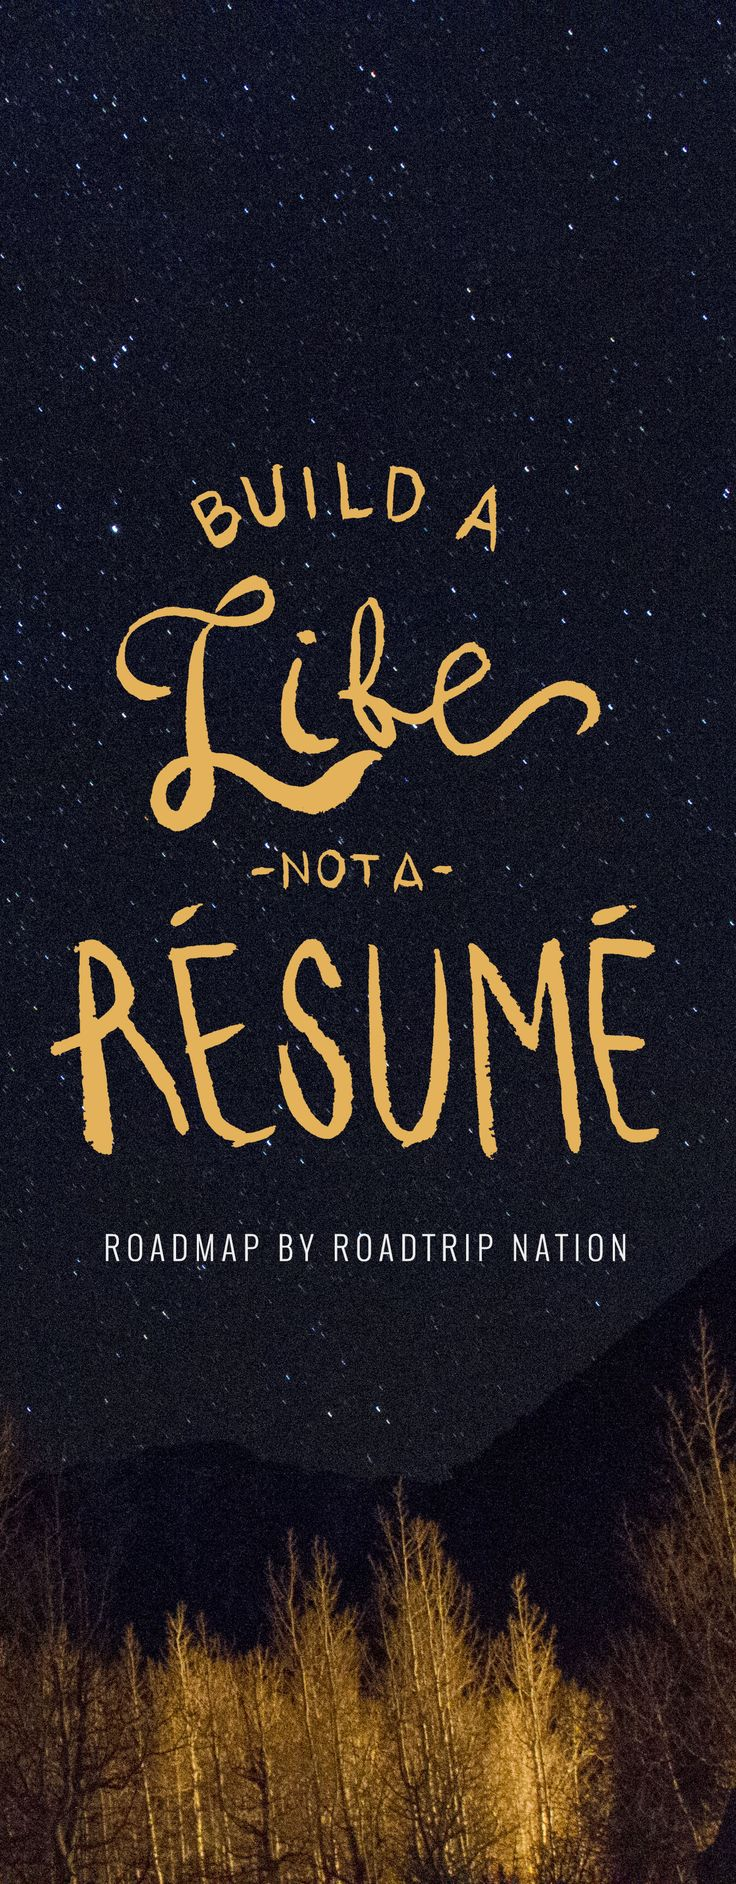 cosmetologist resume%0A Build a life not a resume   Roadmap by Roadtrip Nation